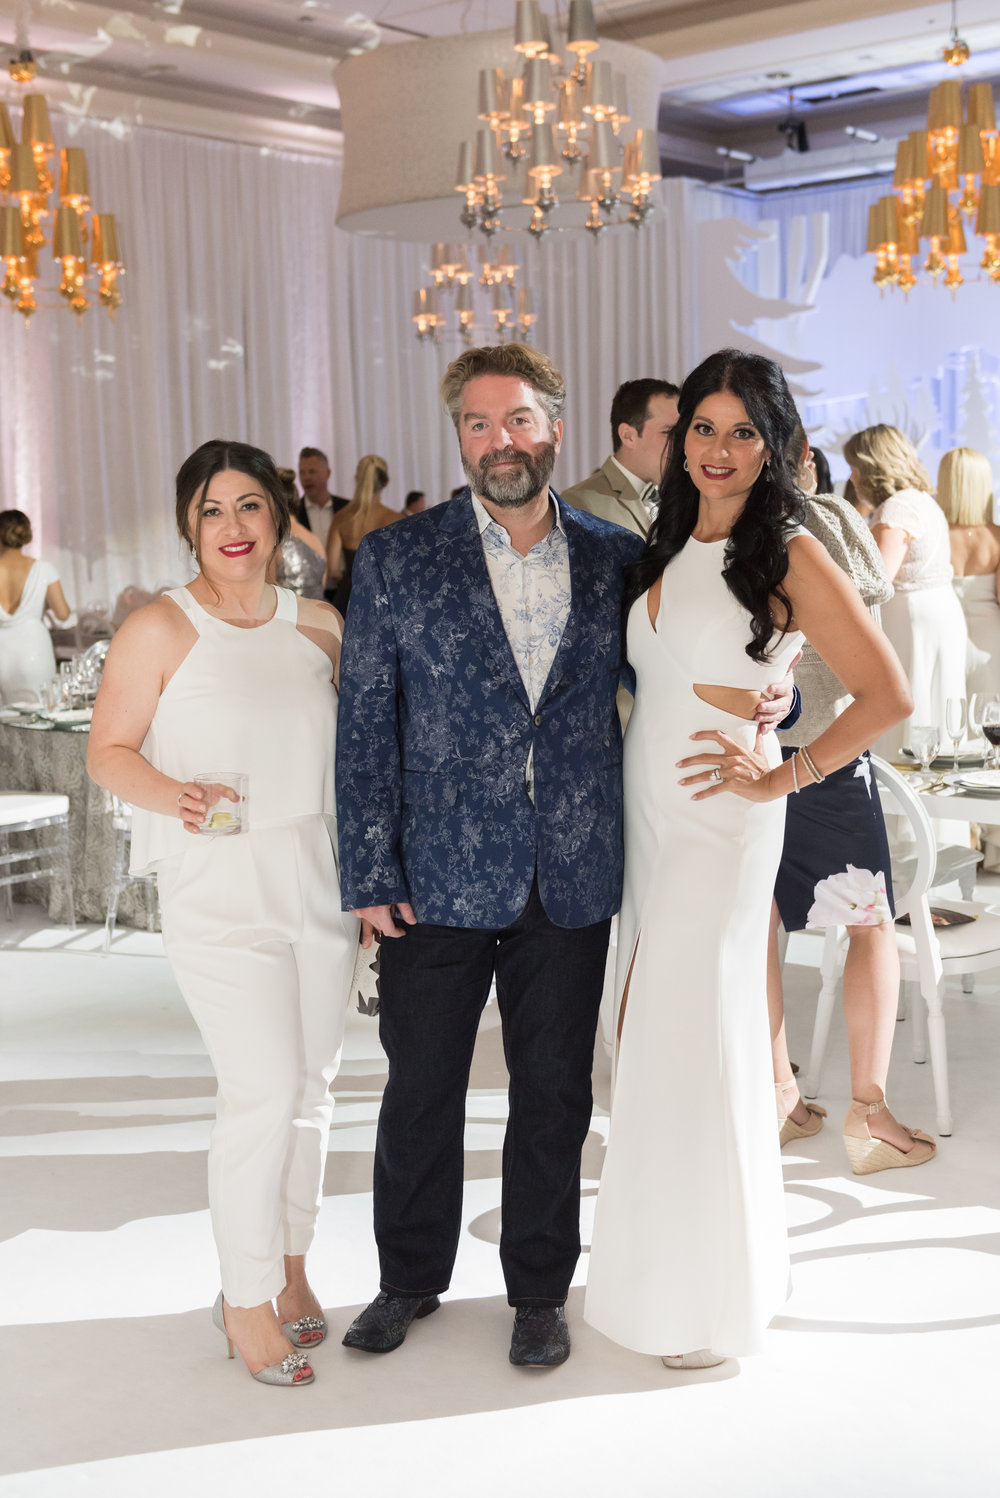 With my travel bestie Susana Diharce and artist Matthew Myhrum.The Engage Gala in Banff Canada. Photo by Genevieve deMaio Photography. Creative Design by Angela Desveaux of Wedluxe. Partners include Revelry Event Designers, Modern Luxe Rentals, West Coast Music, La Tavola Linen, Decor and More, Engineered Arts, and Designer Dance Floors,.